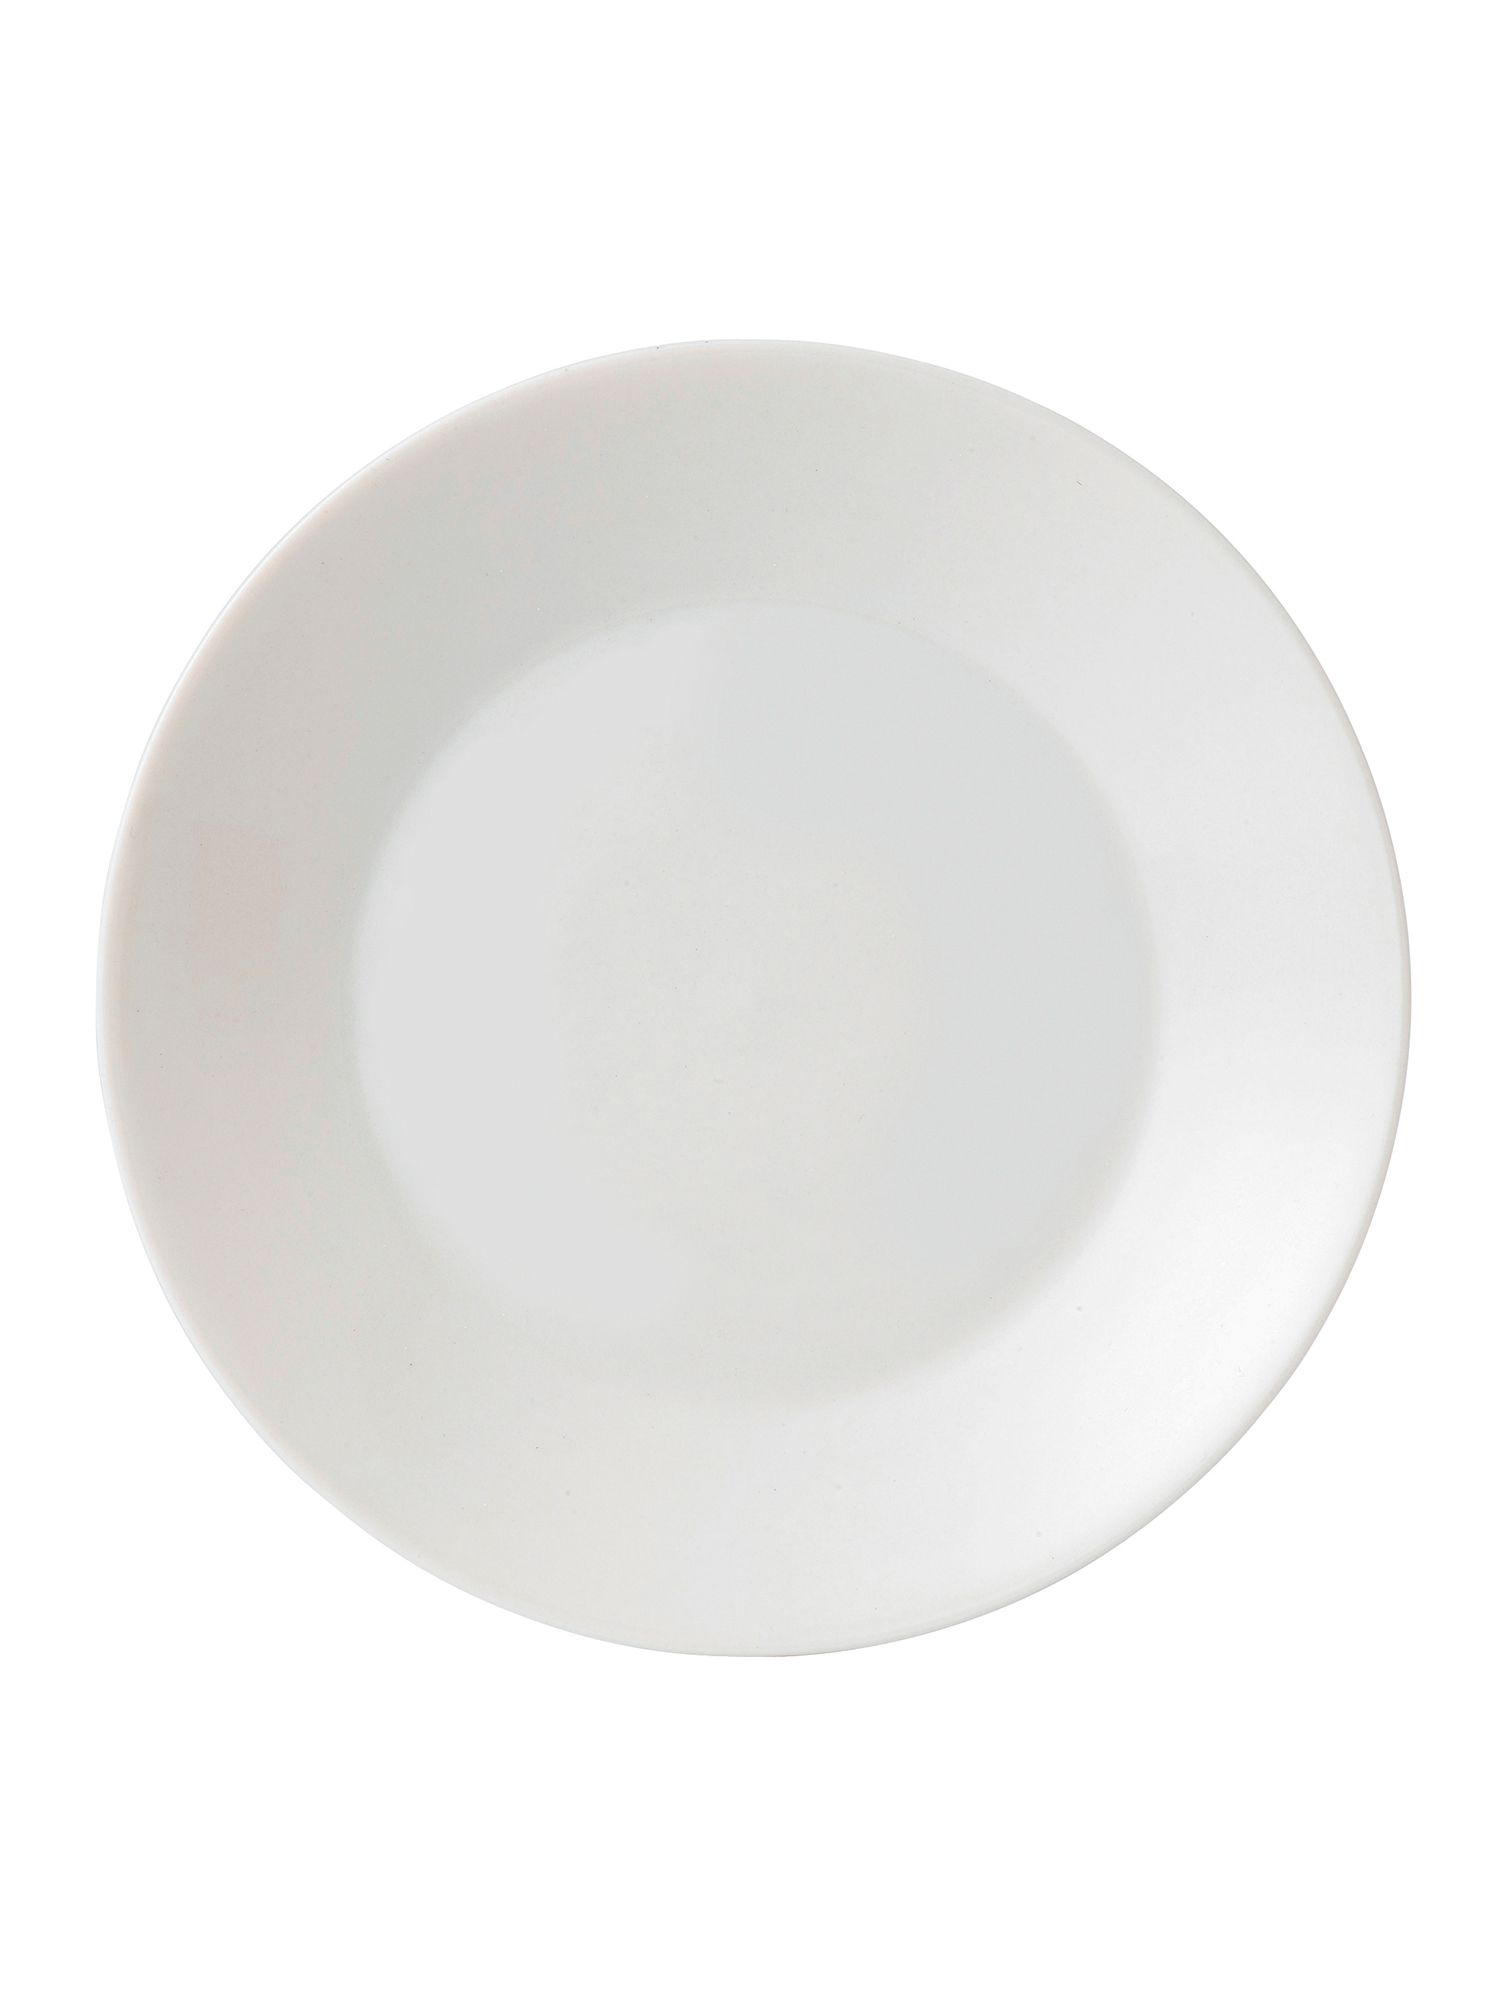 Fable white 23cm pasta bowl